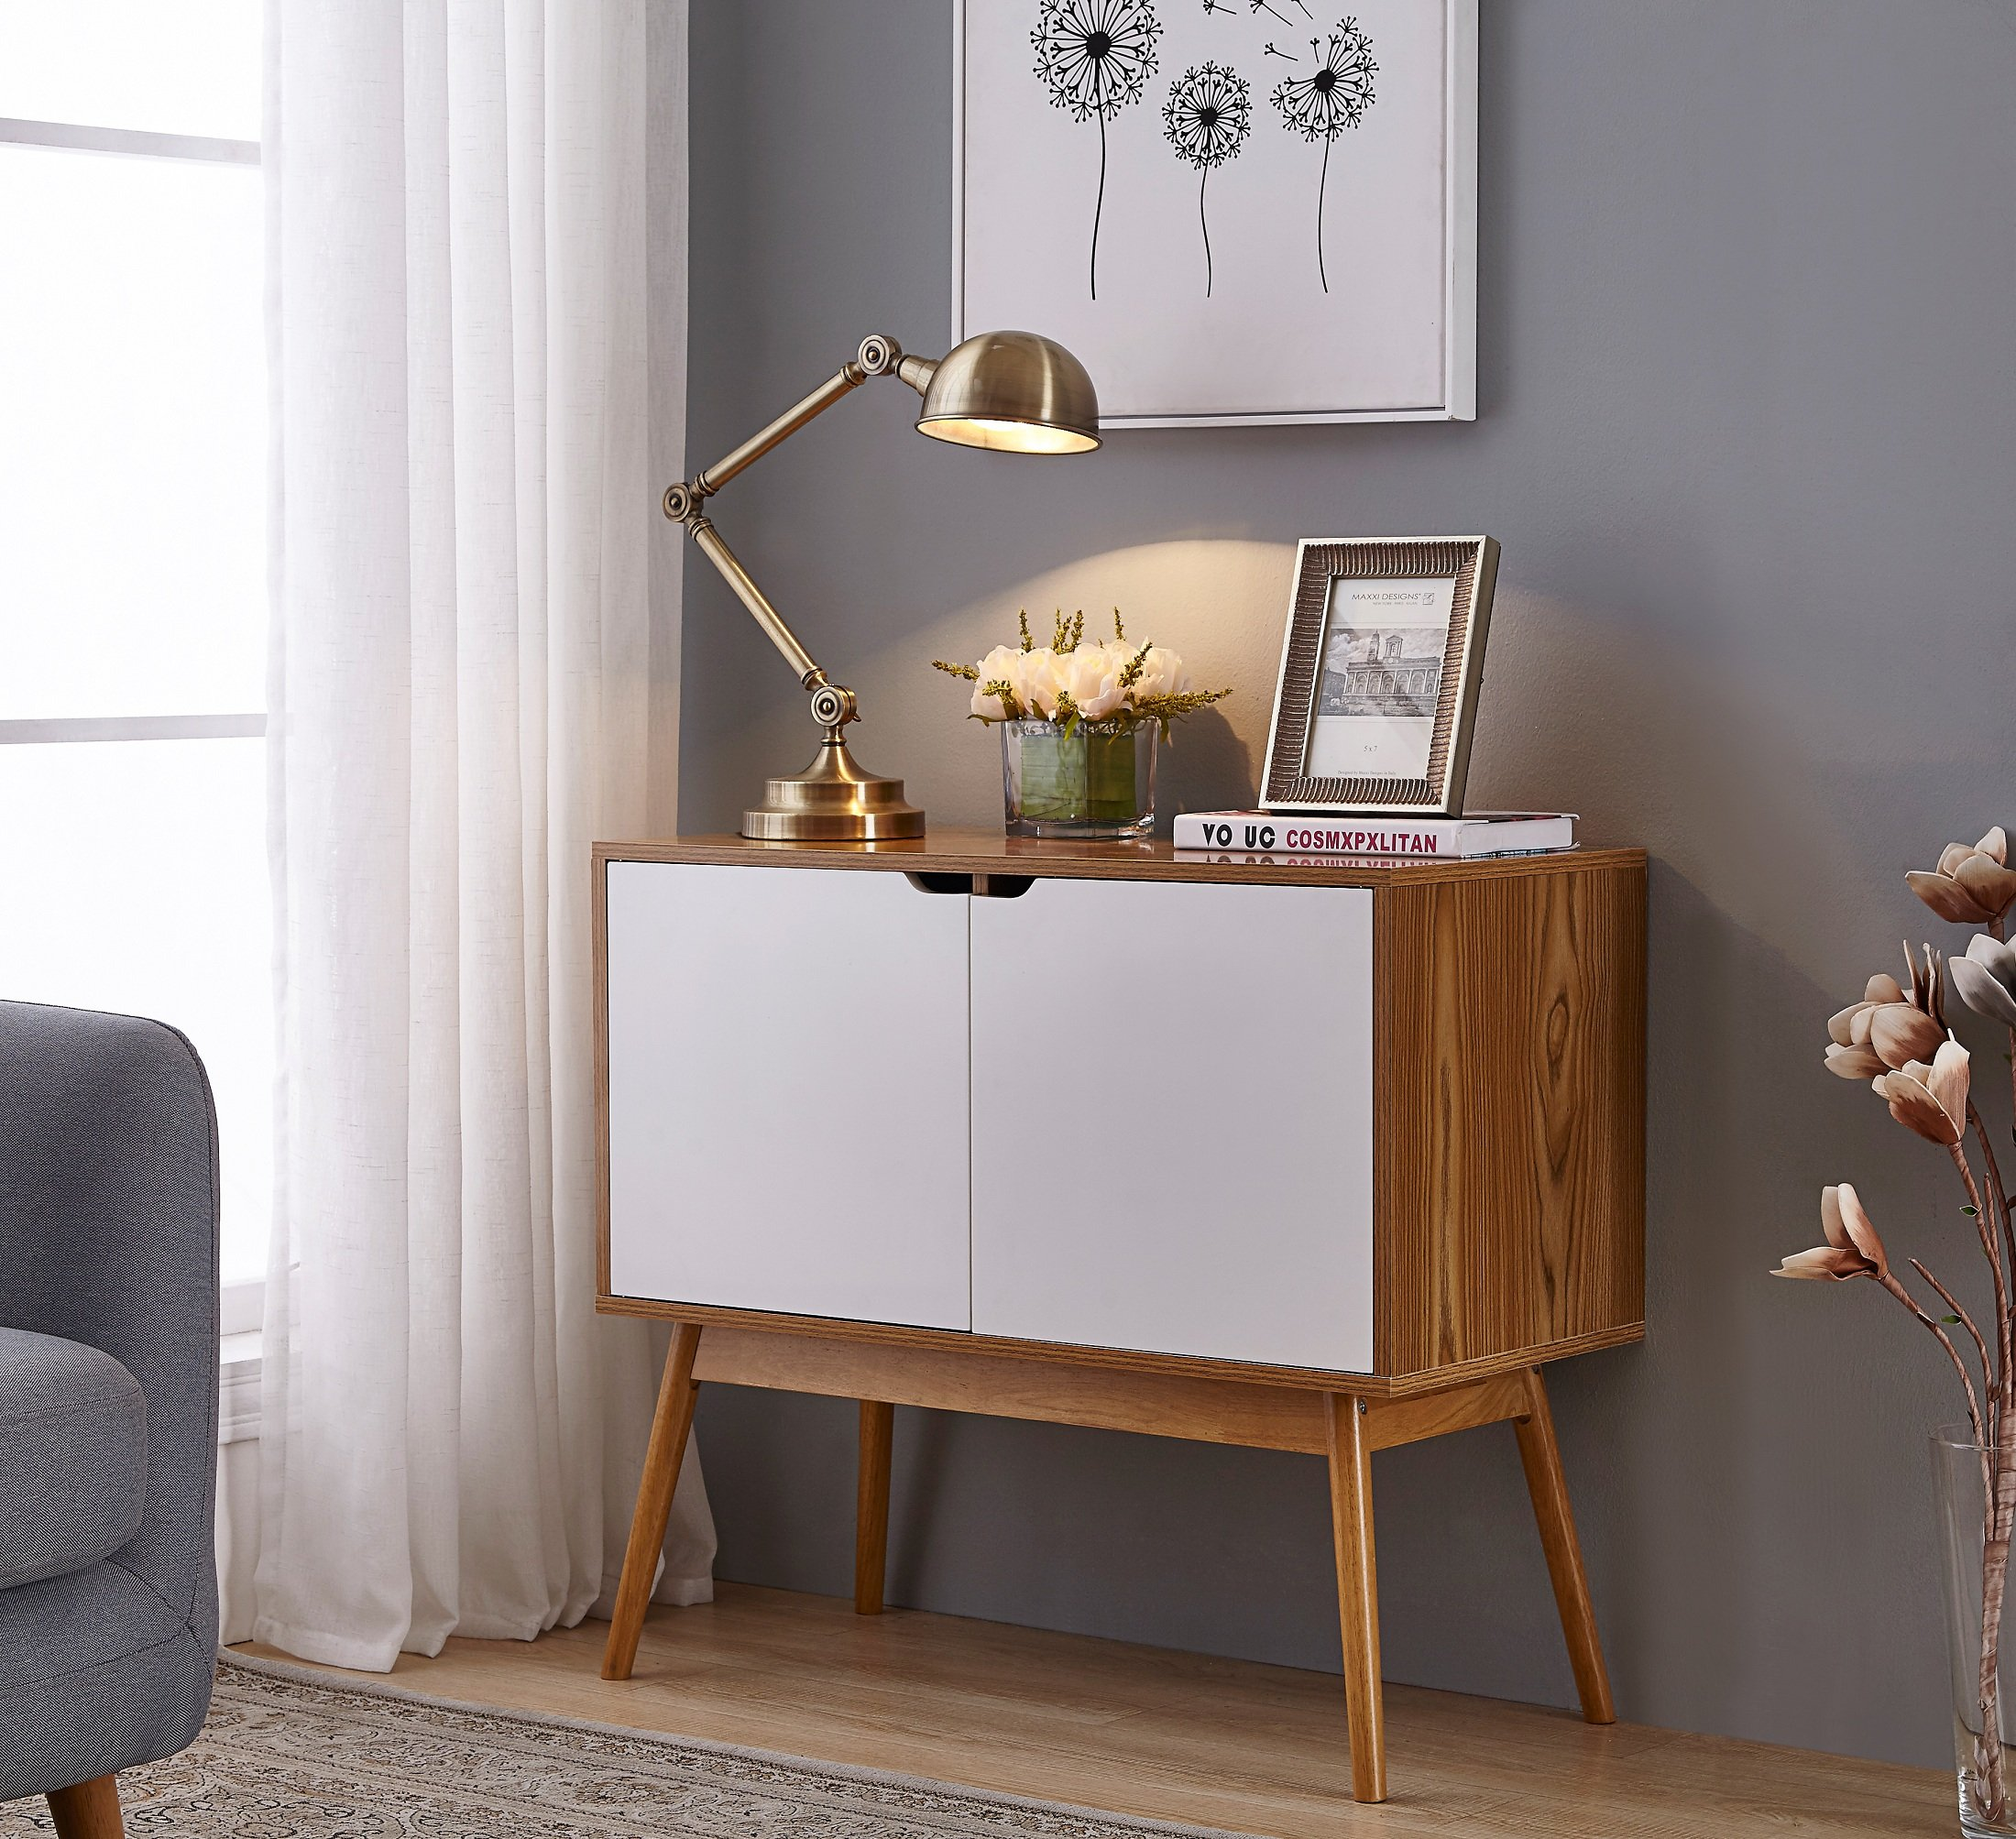 White/Woodgrain Mid-Century Style Console Sofa Table Storage Cabinet Sideboard with 2 Doors - Color: White and Woodgrain Material: Rubberwood, MDF Comes with 2 Doors to feature spacious space for storage - living-room-furniture, living-room, console-tables - 91OUhkOy0uL -